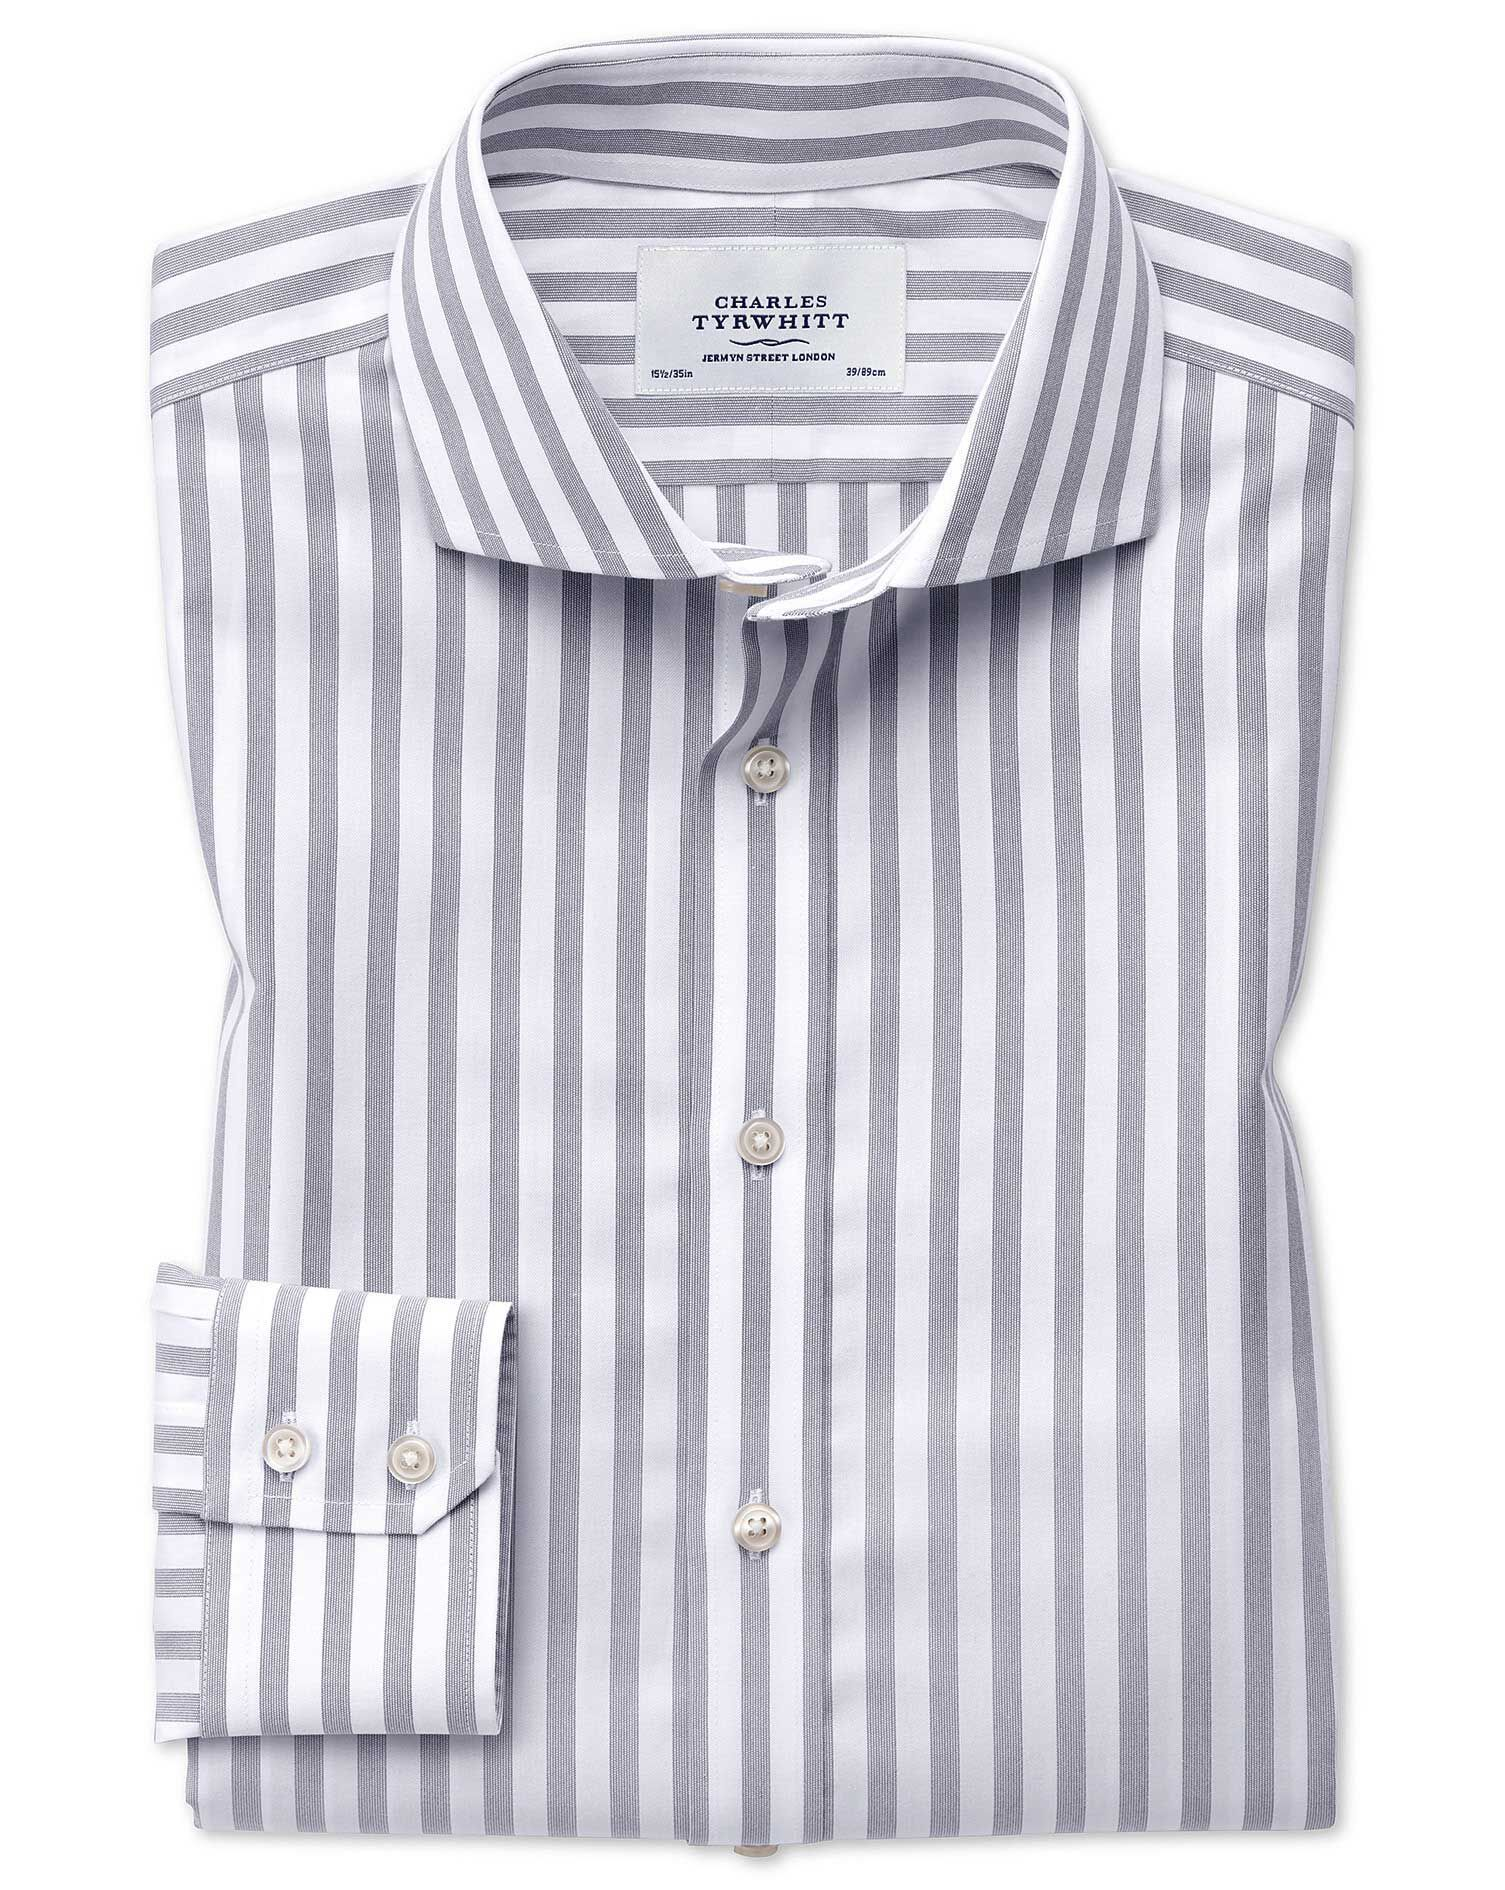 Slim Fit Cutaway Non-Iron Wide Stripe Grey Cotton Formal Shirt Single Cuff Size 15.5/35 by Charles T